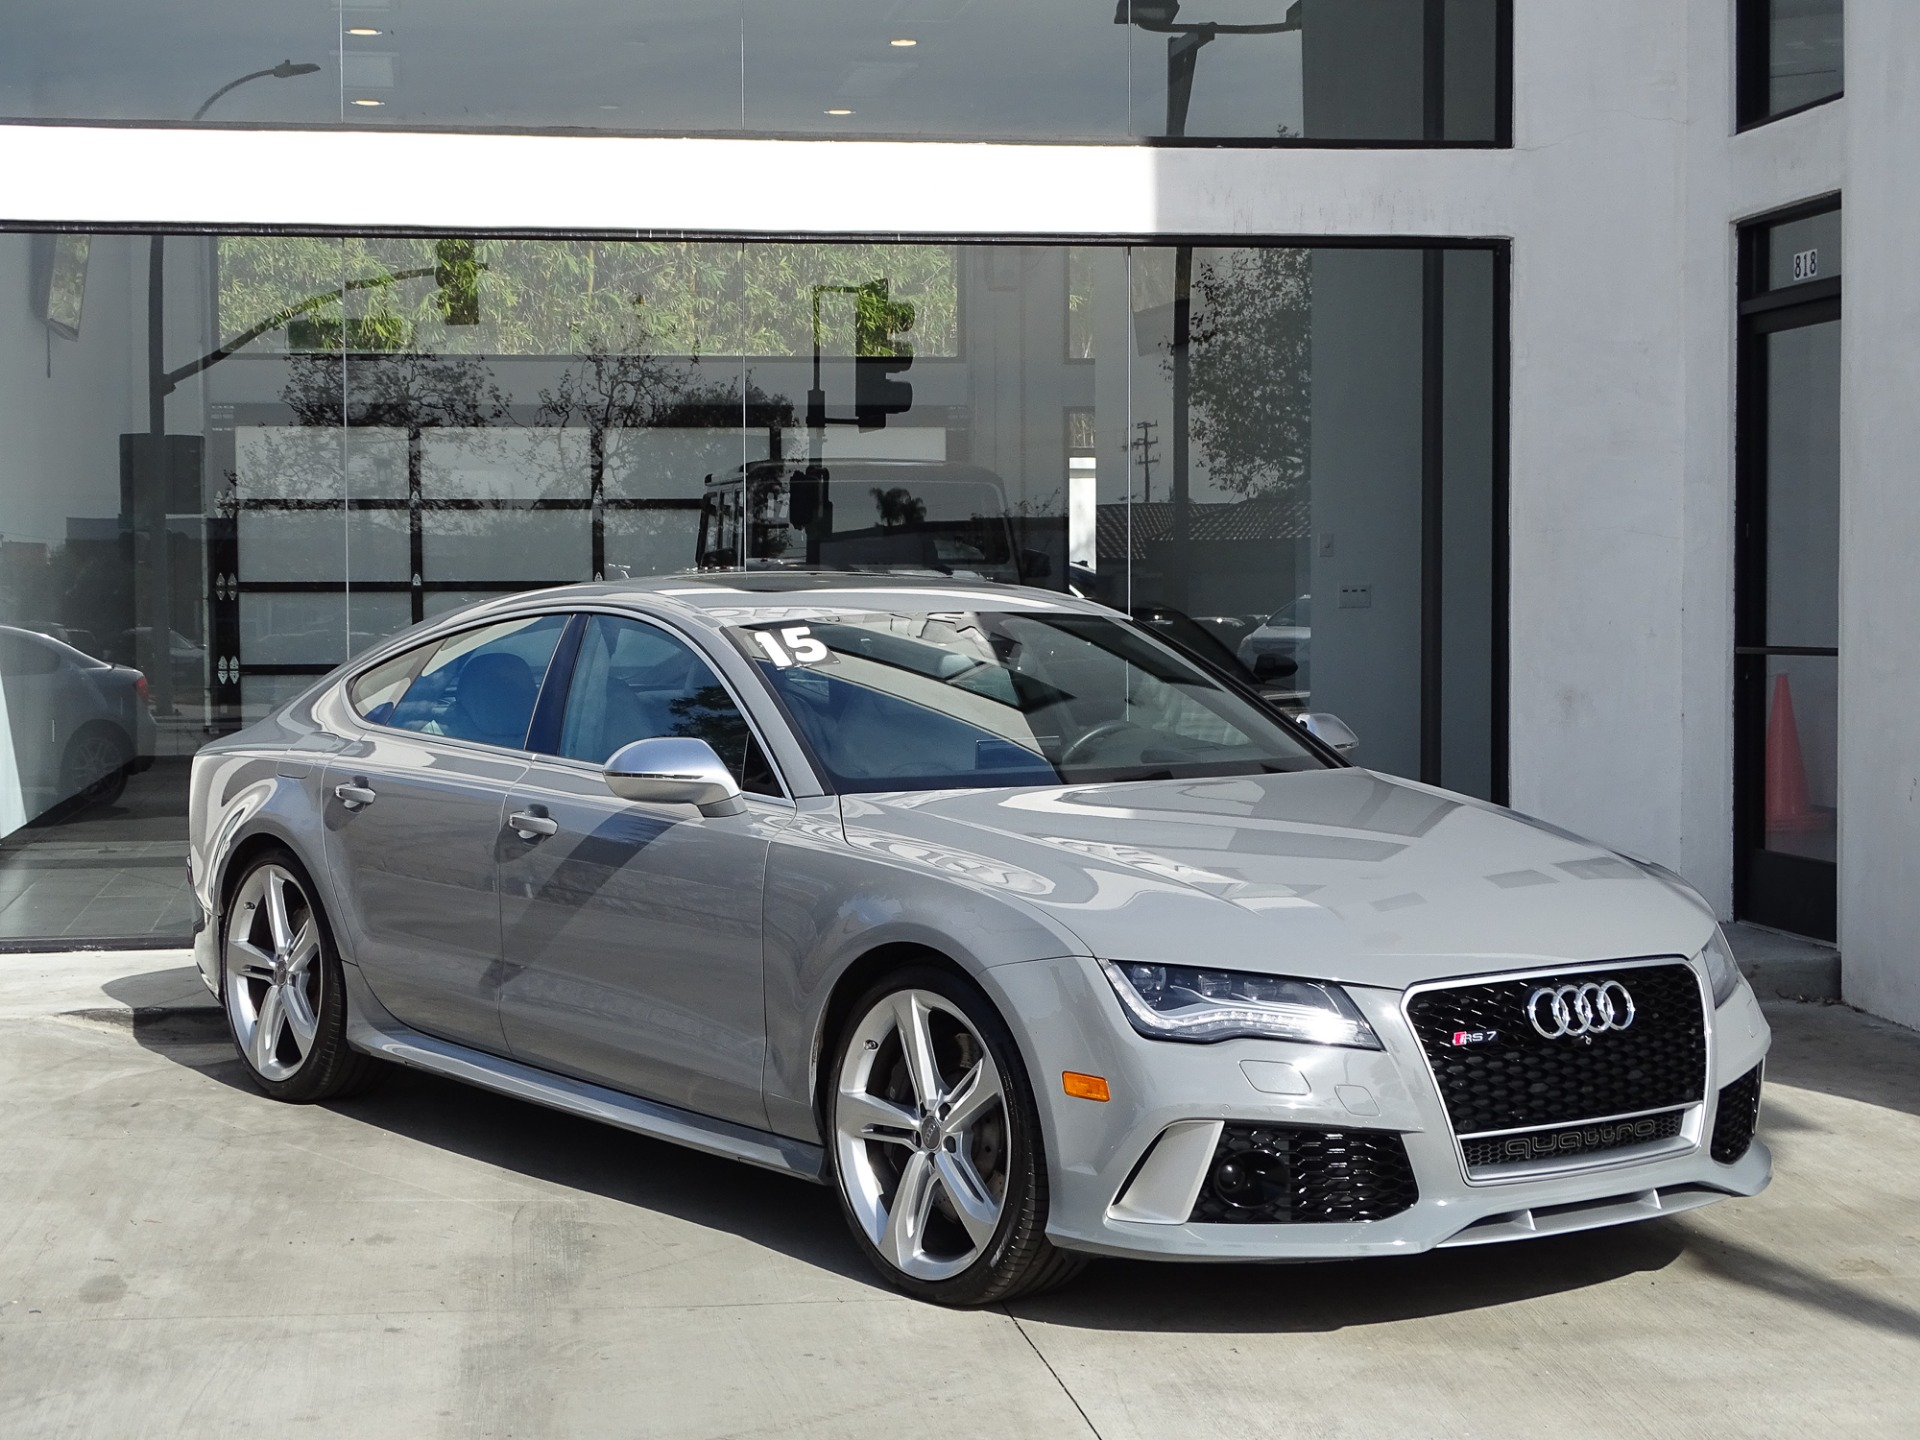 Audi Dealership Near Me >> 2015 Audi RS7 4.0T quattro Prestige Stock # 6330 for sale ...